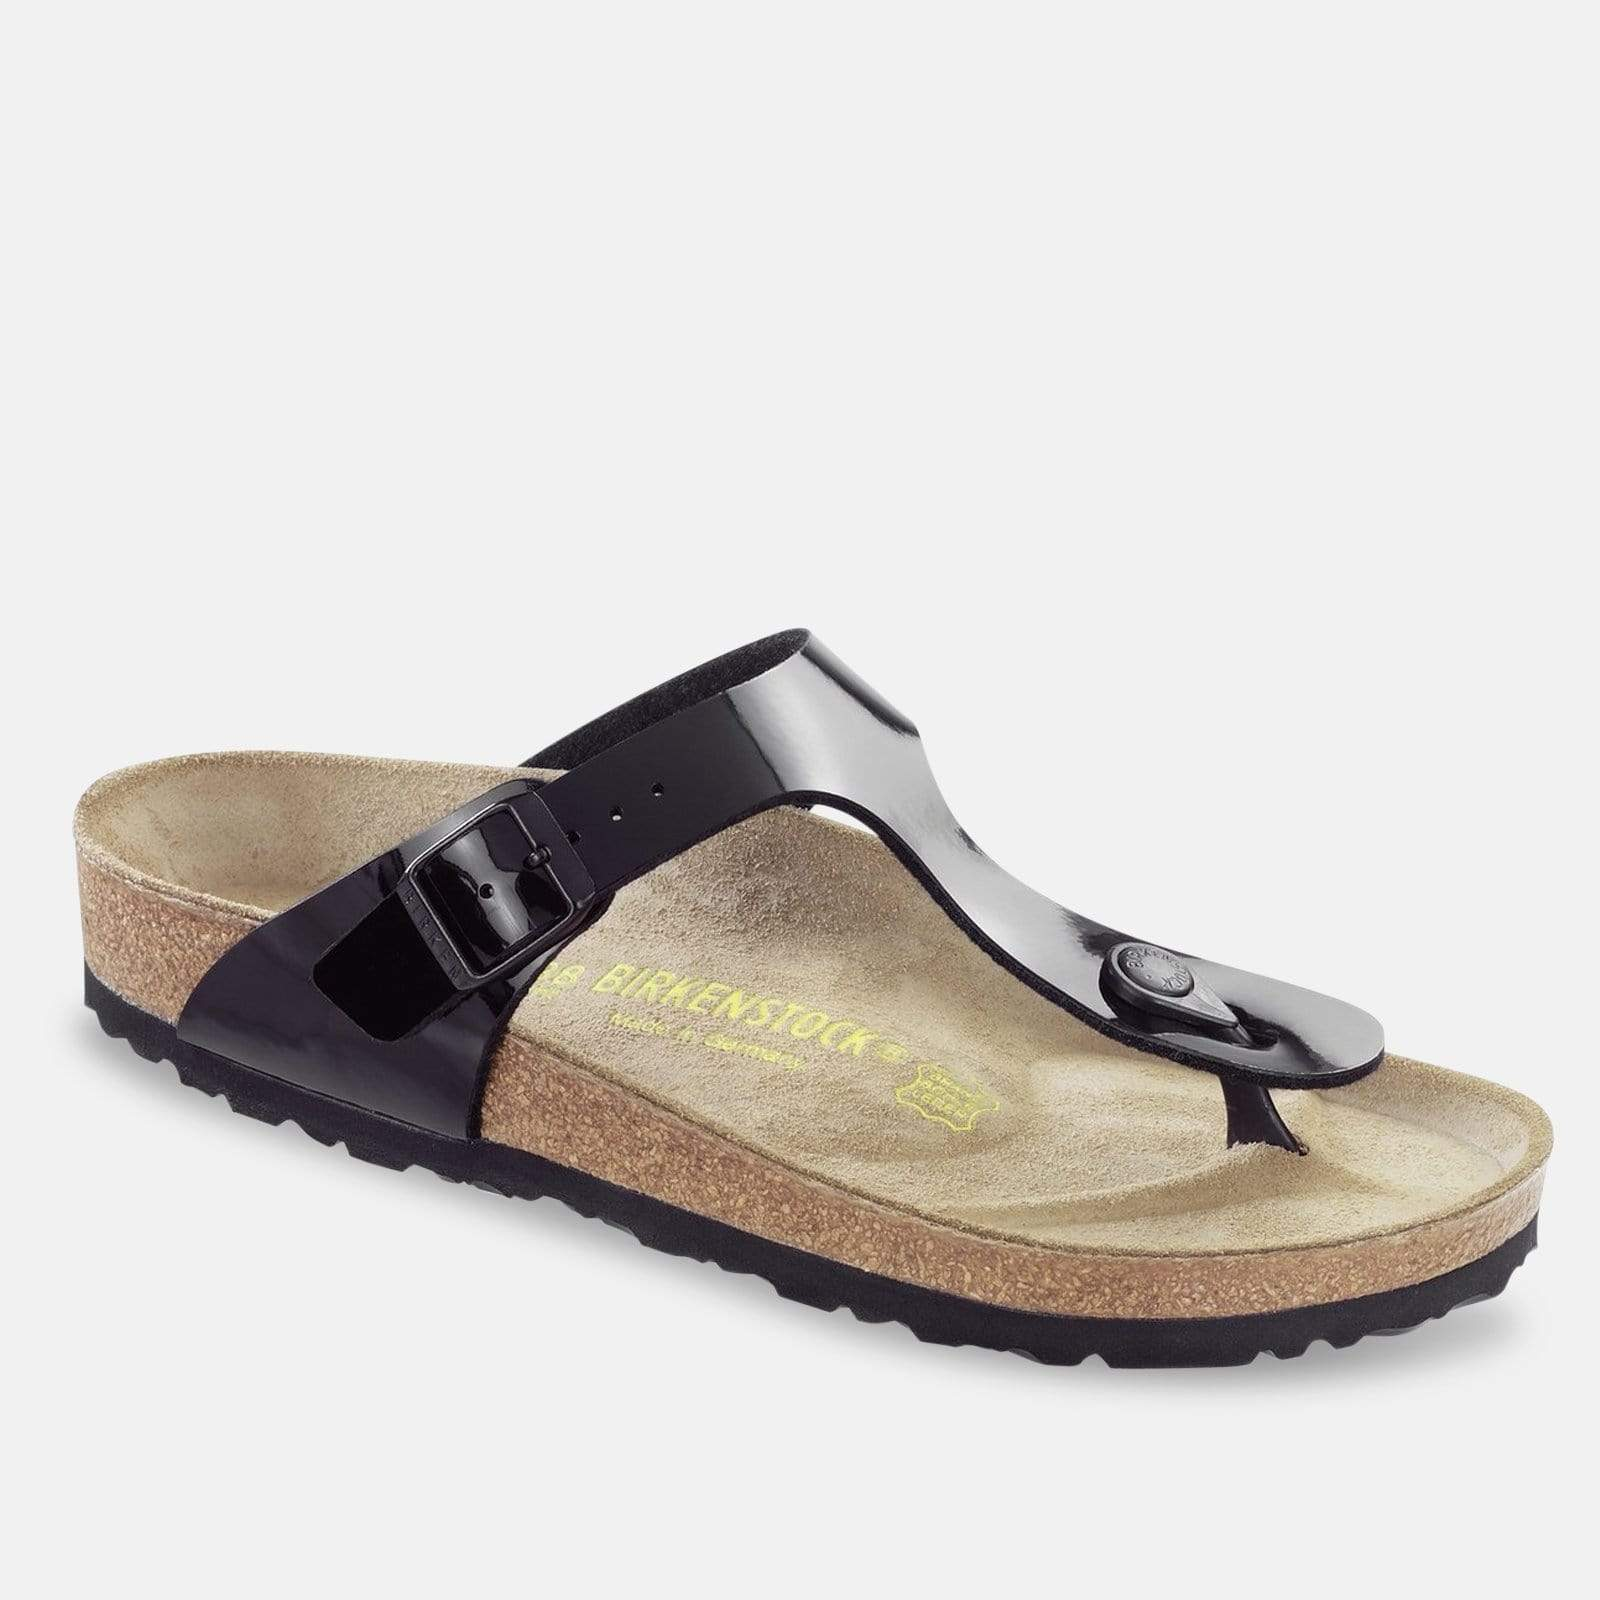 Birkenstock Footwear Gizeh Regular Fit Black Patent 043661